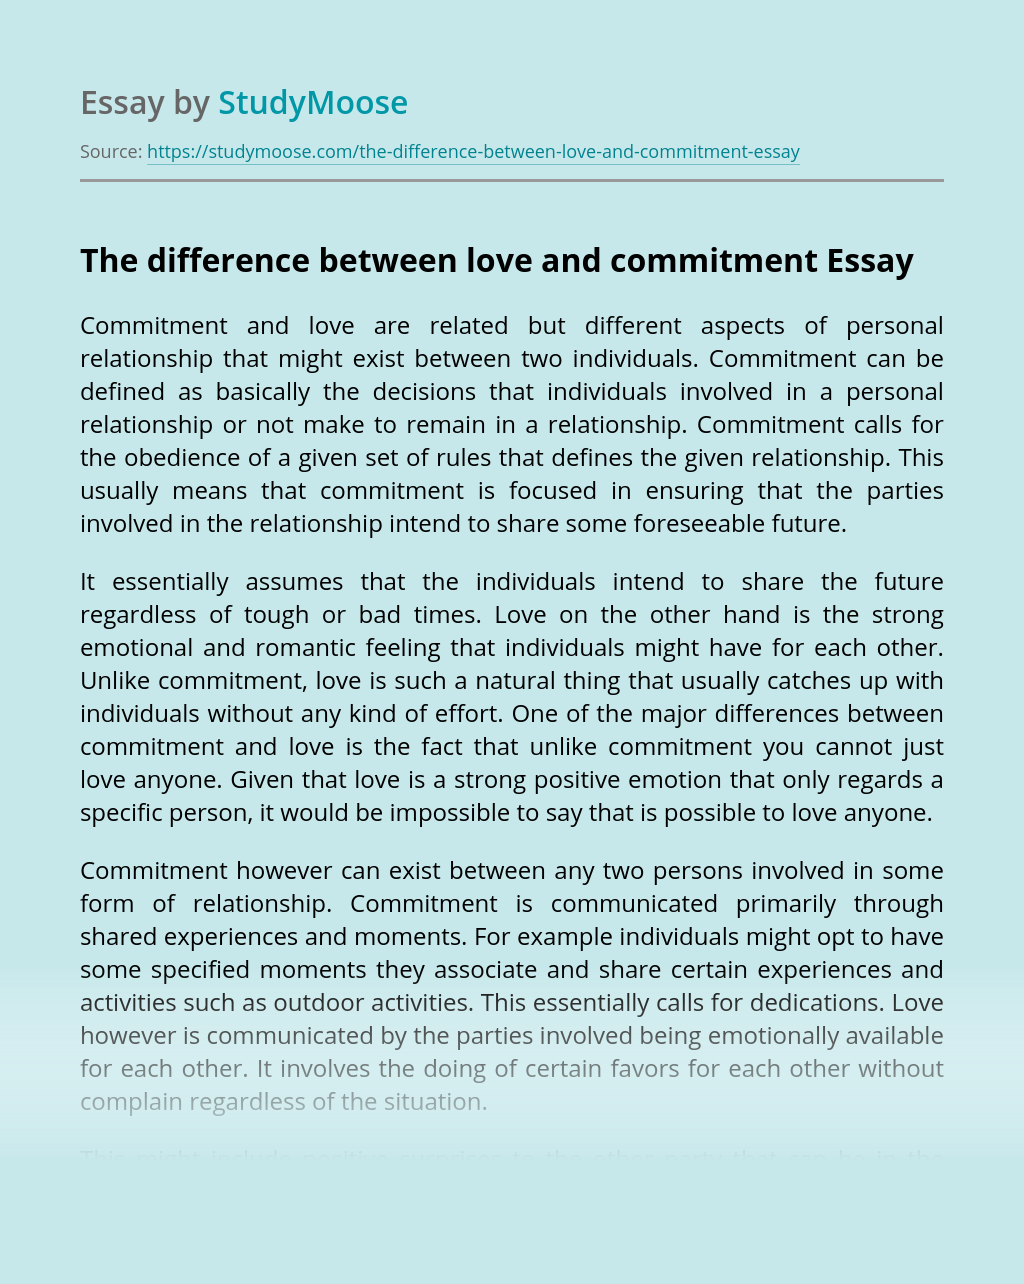 The difference between love and commitment